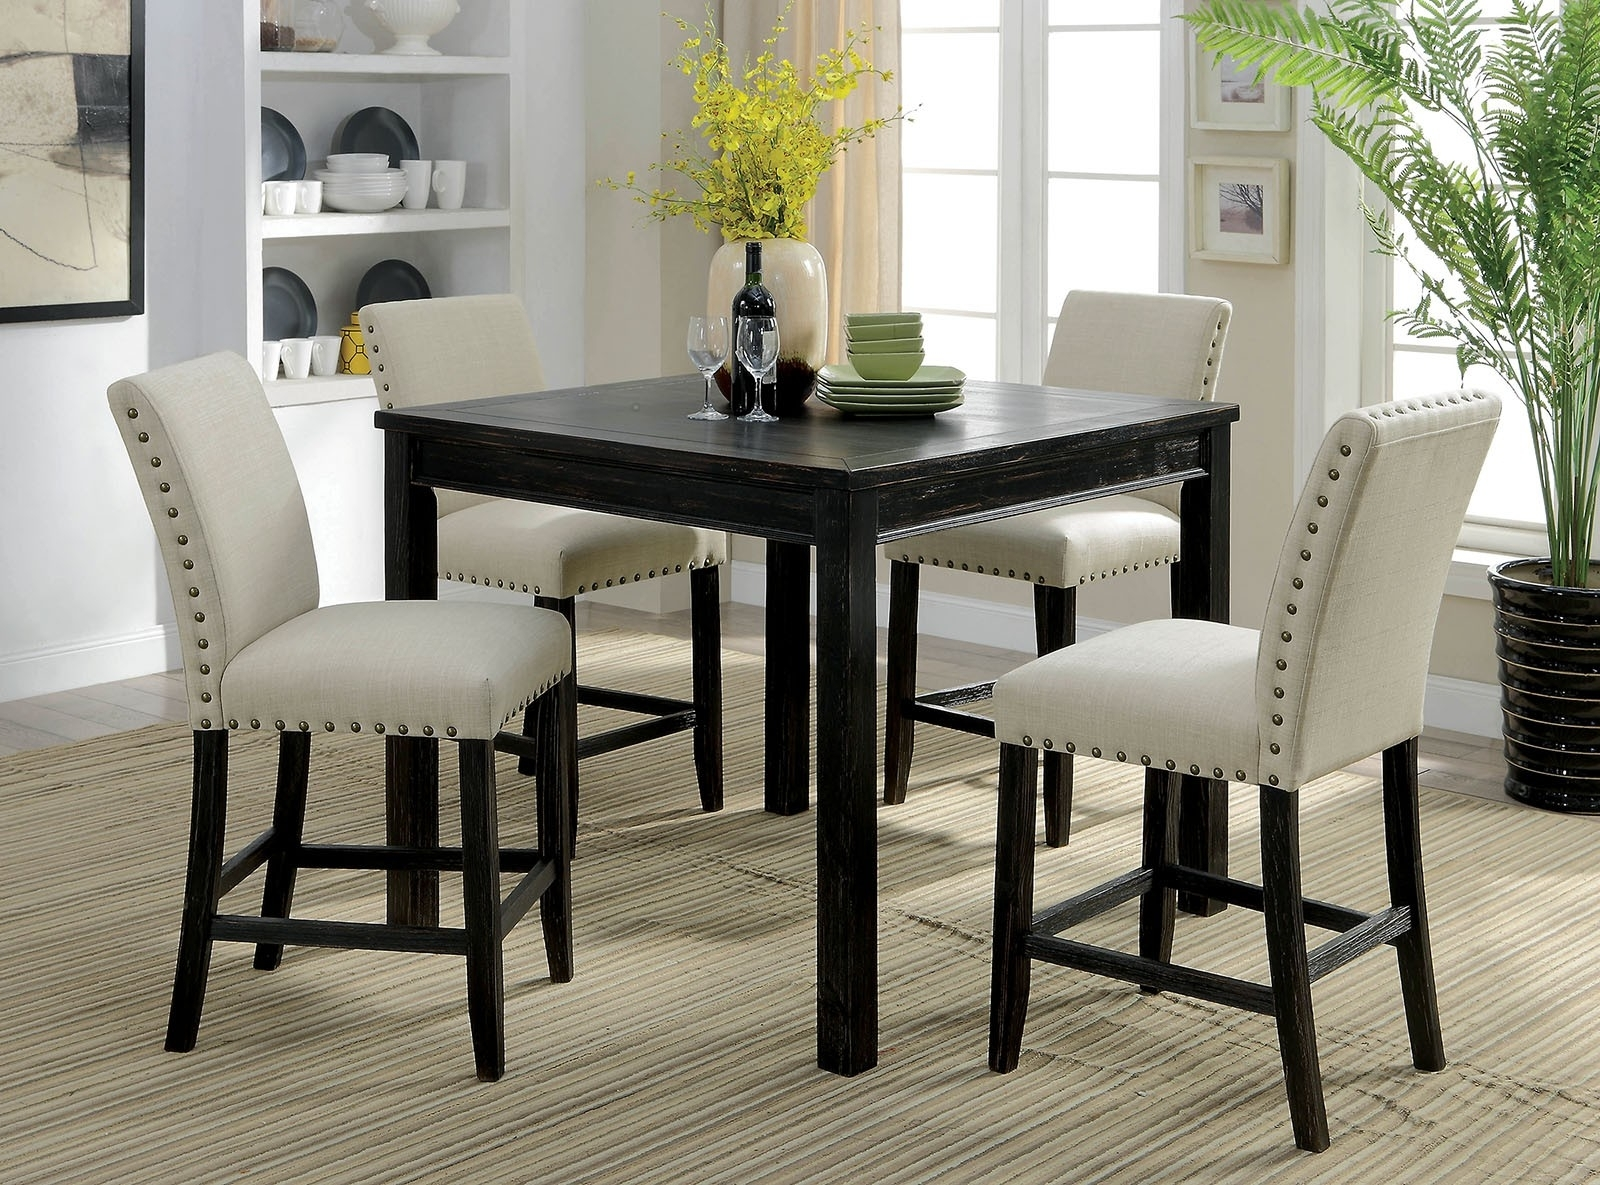 Dining Tables And Fabric Chairs Within Popular Kristie Rustic Style Antique Black Finish 5Pc Counter Height Dining (Gallery 18 of 25)